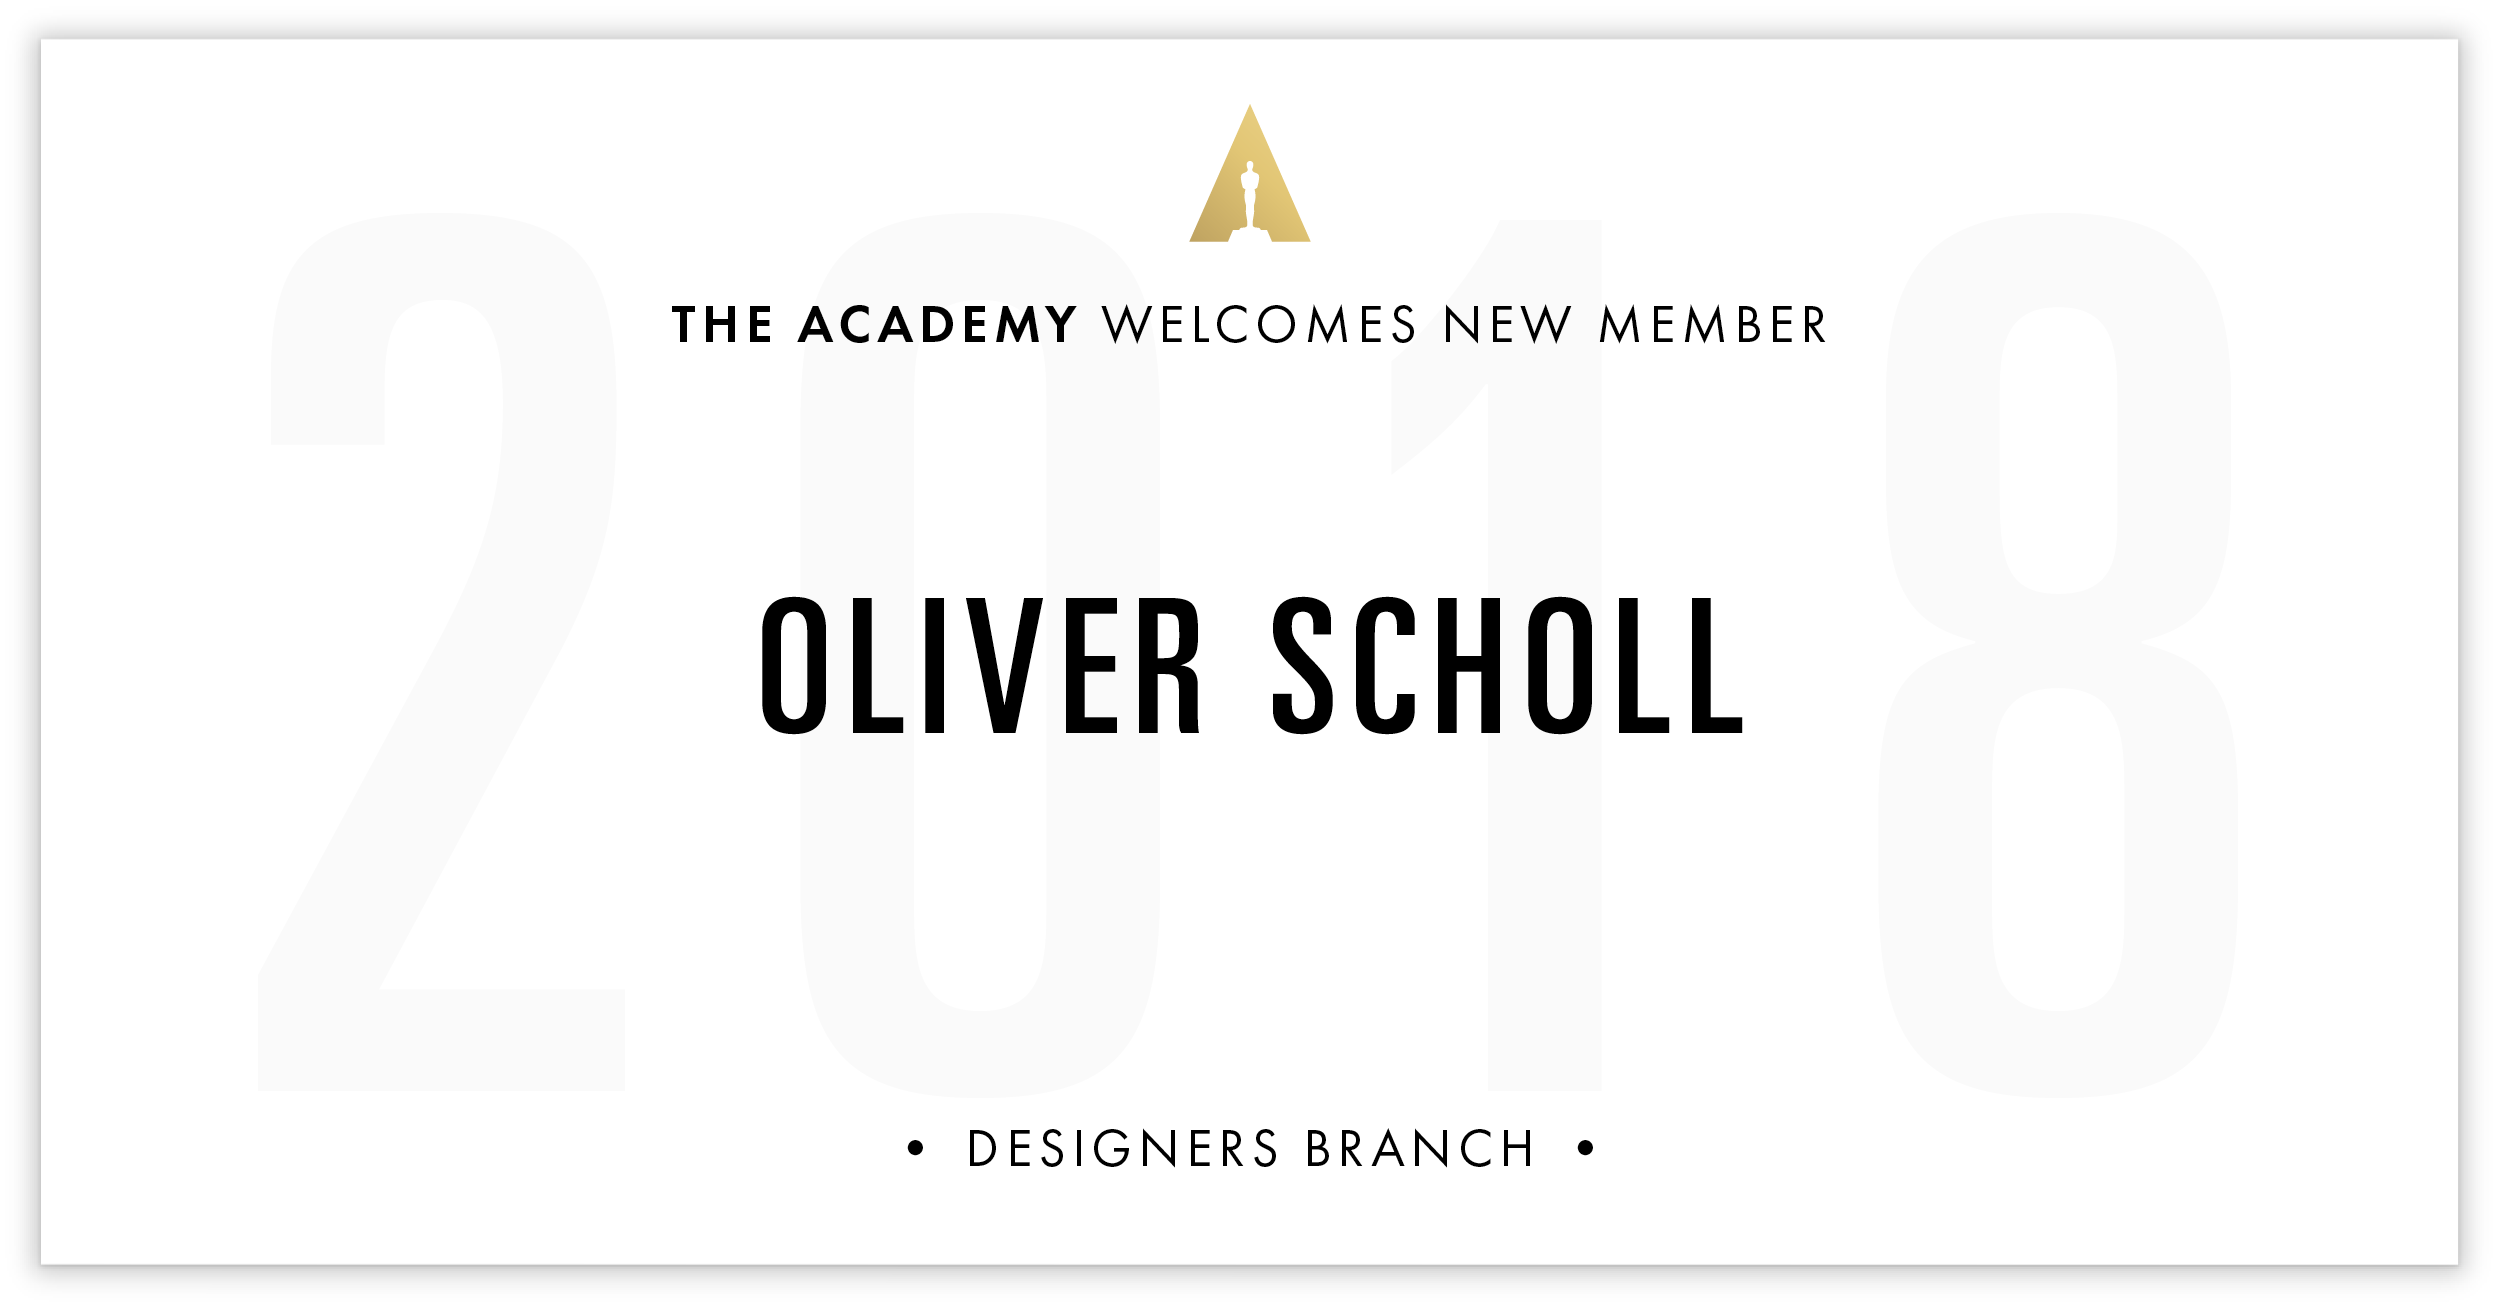 Oliver Scholl is invited!